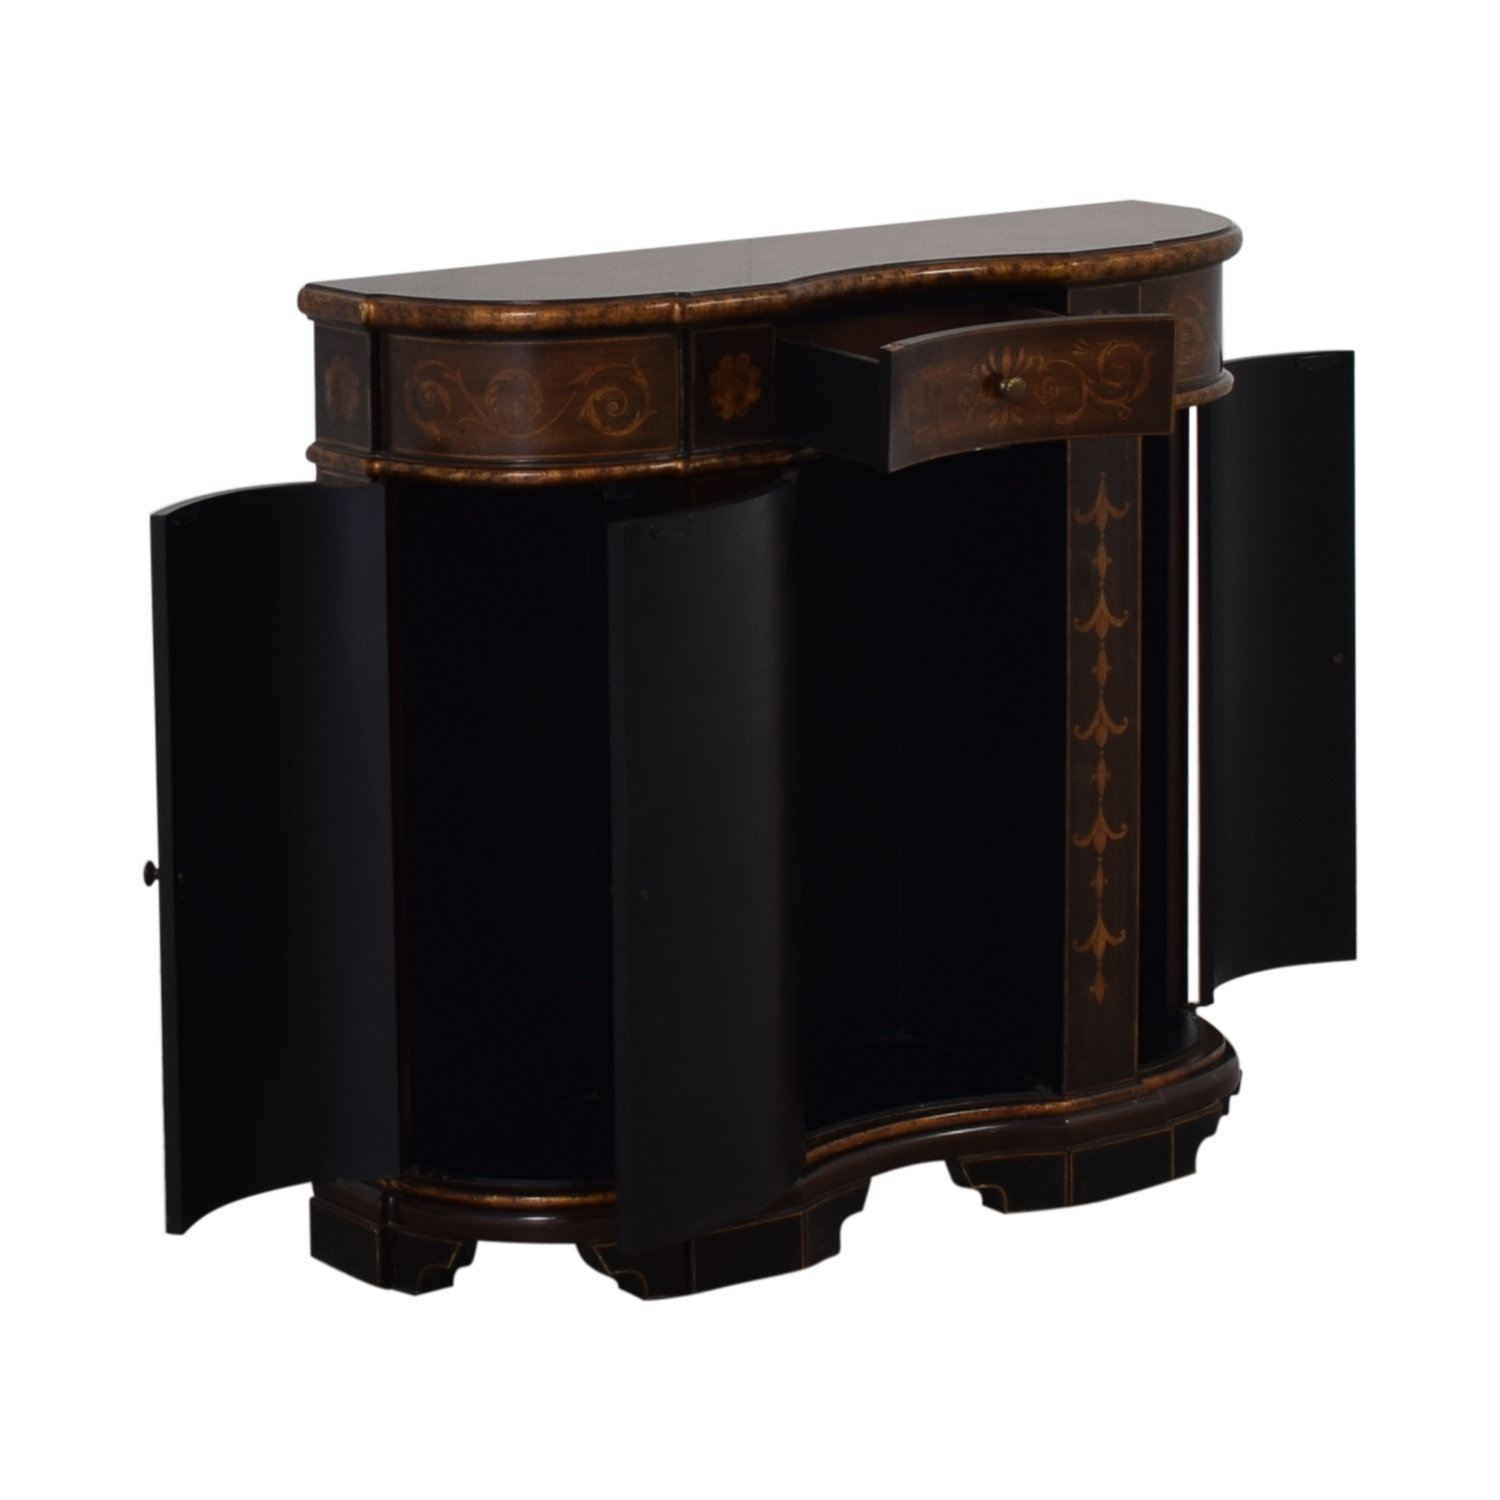 Cabinet with Curved Doors / Cabinets & Sideboards